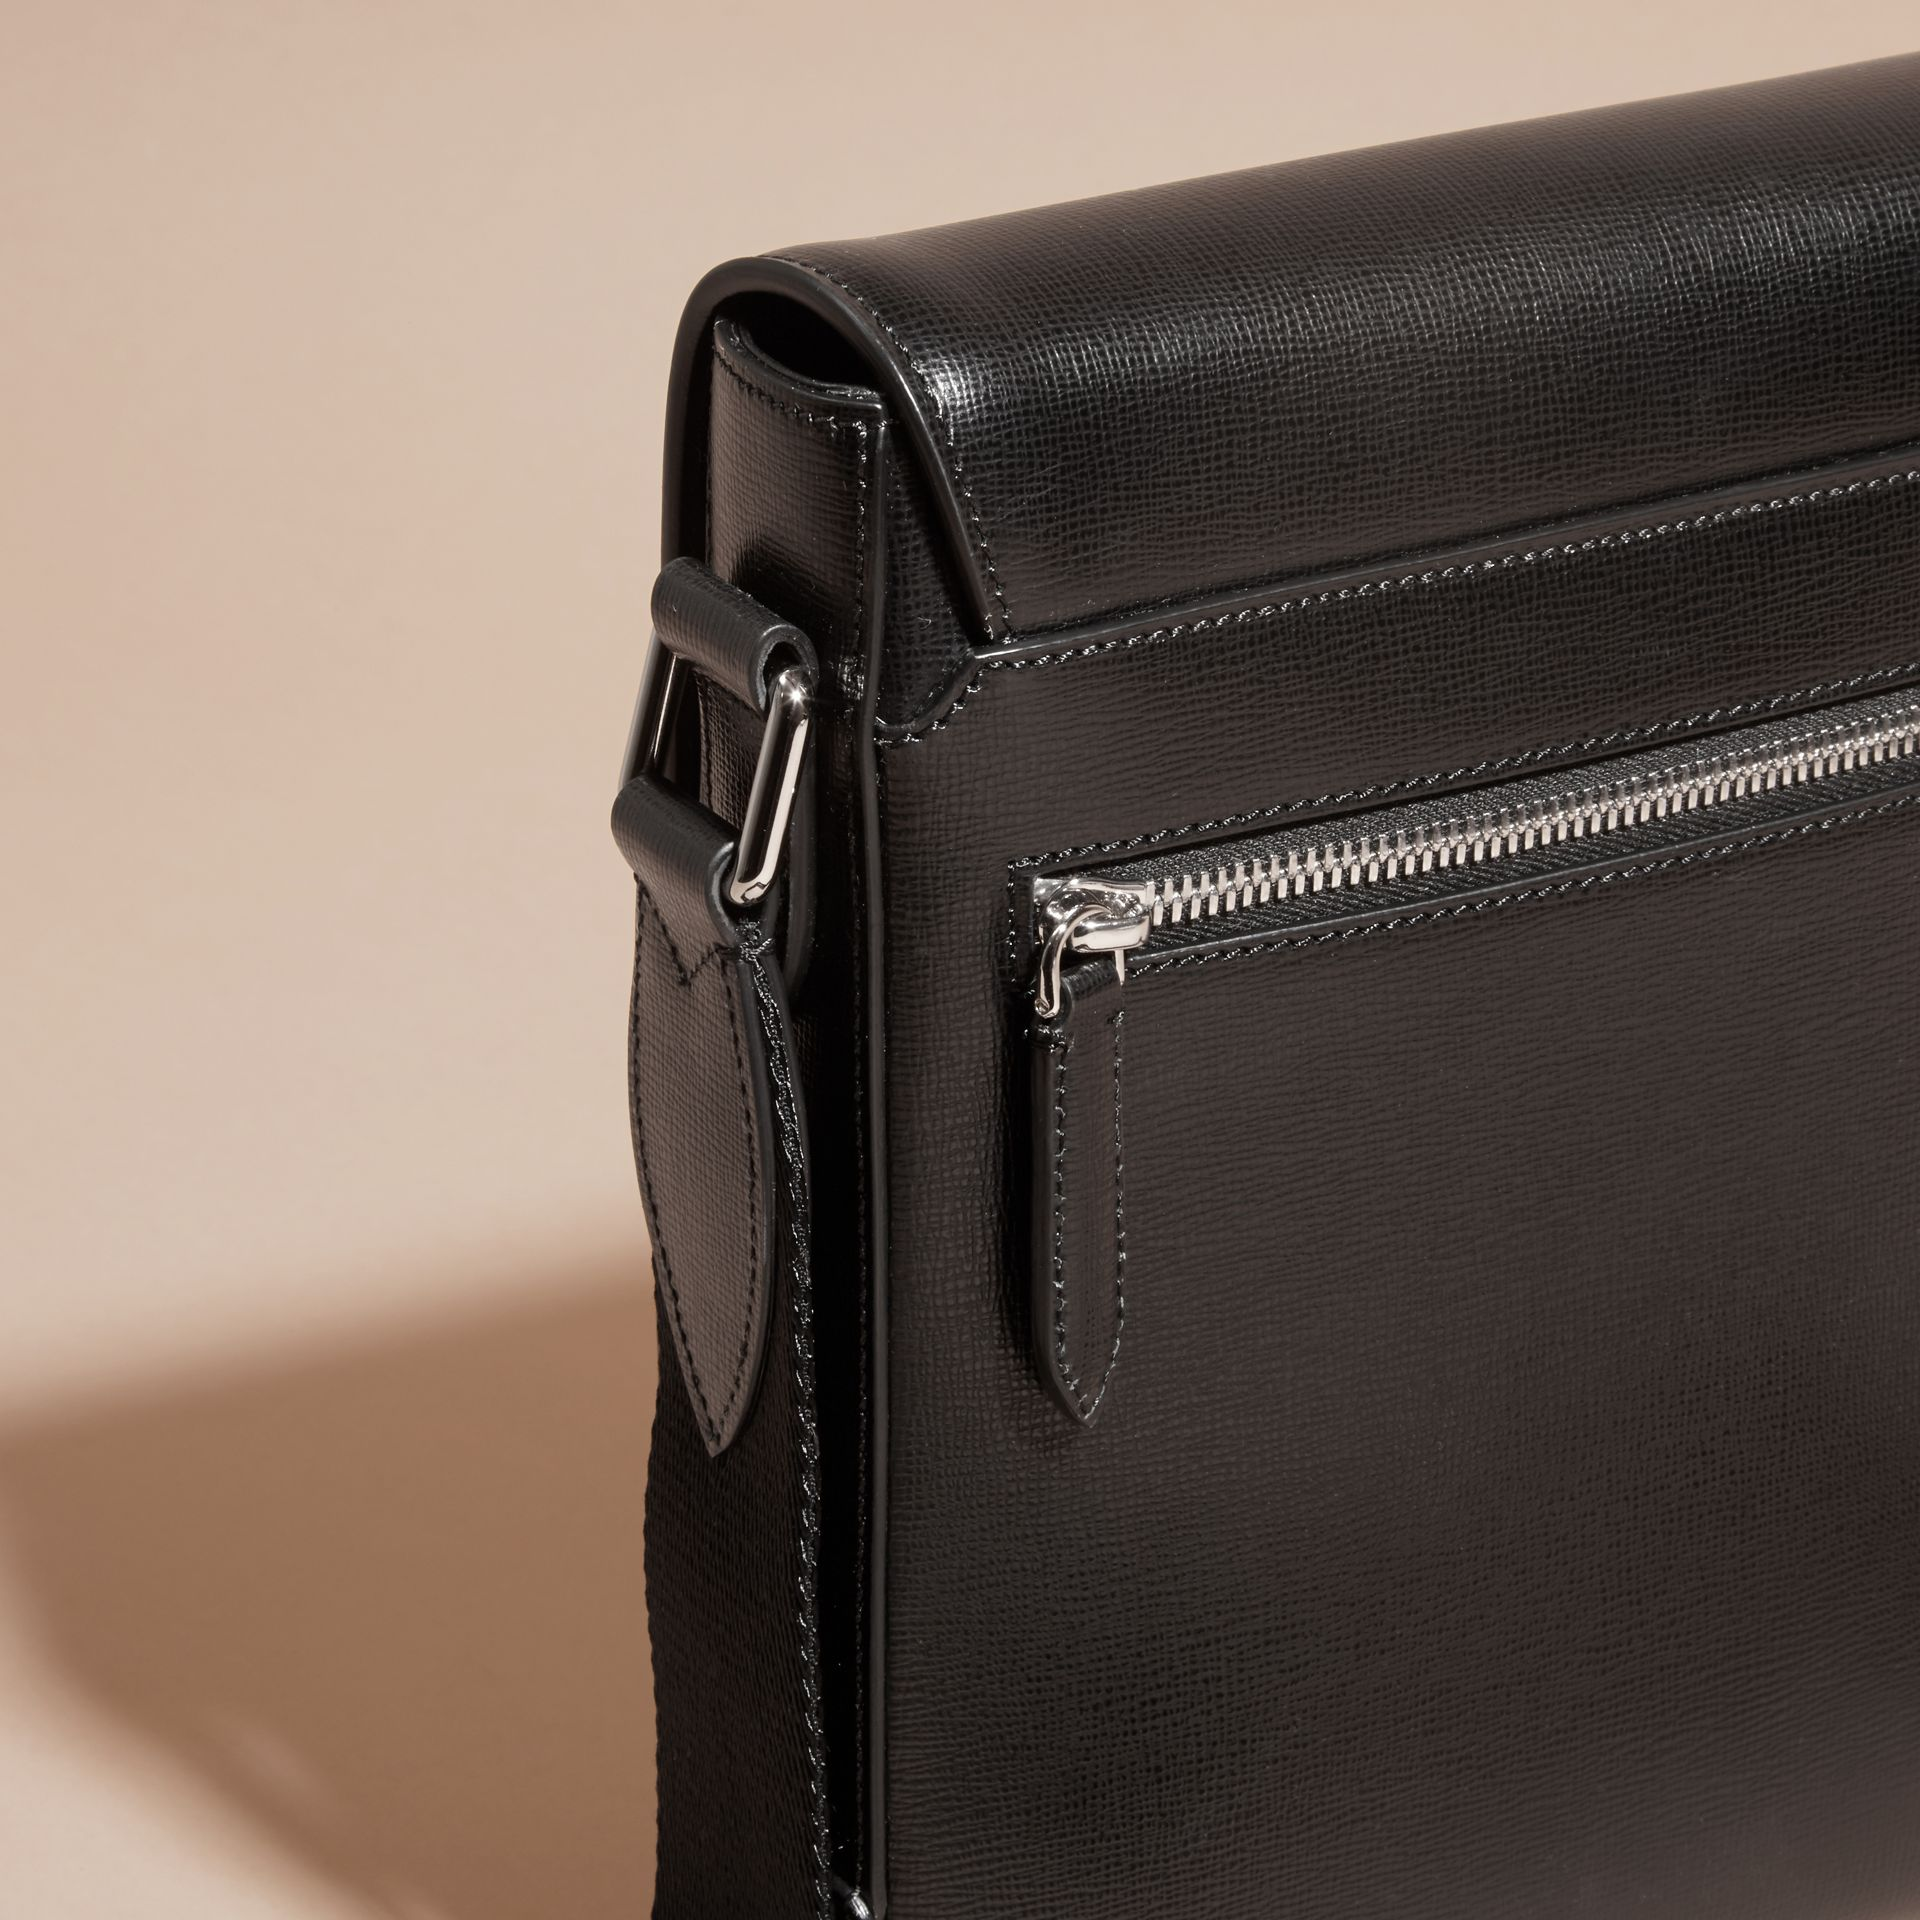 Black London Leather Crossbody Bag Black - gallery image 2